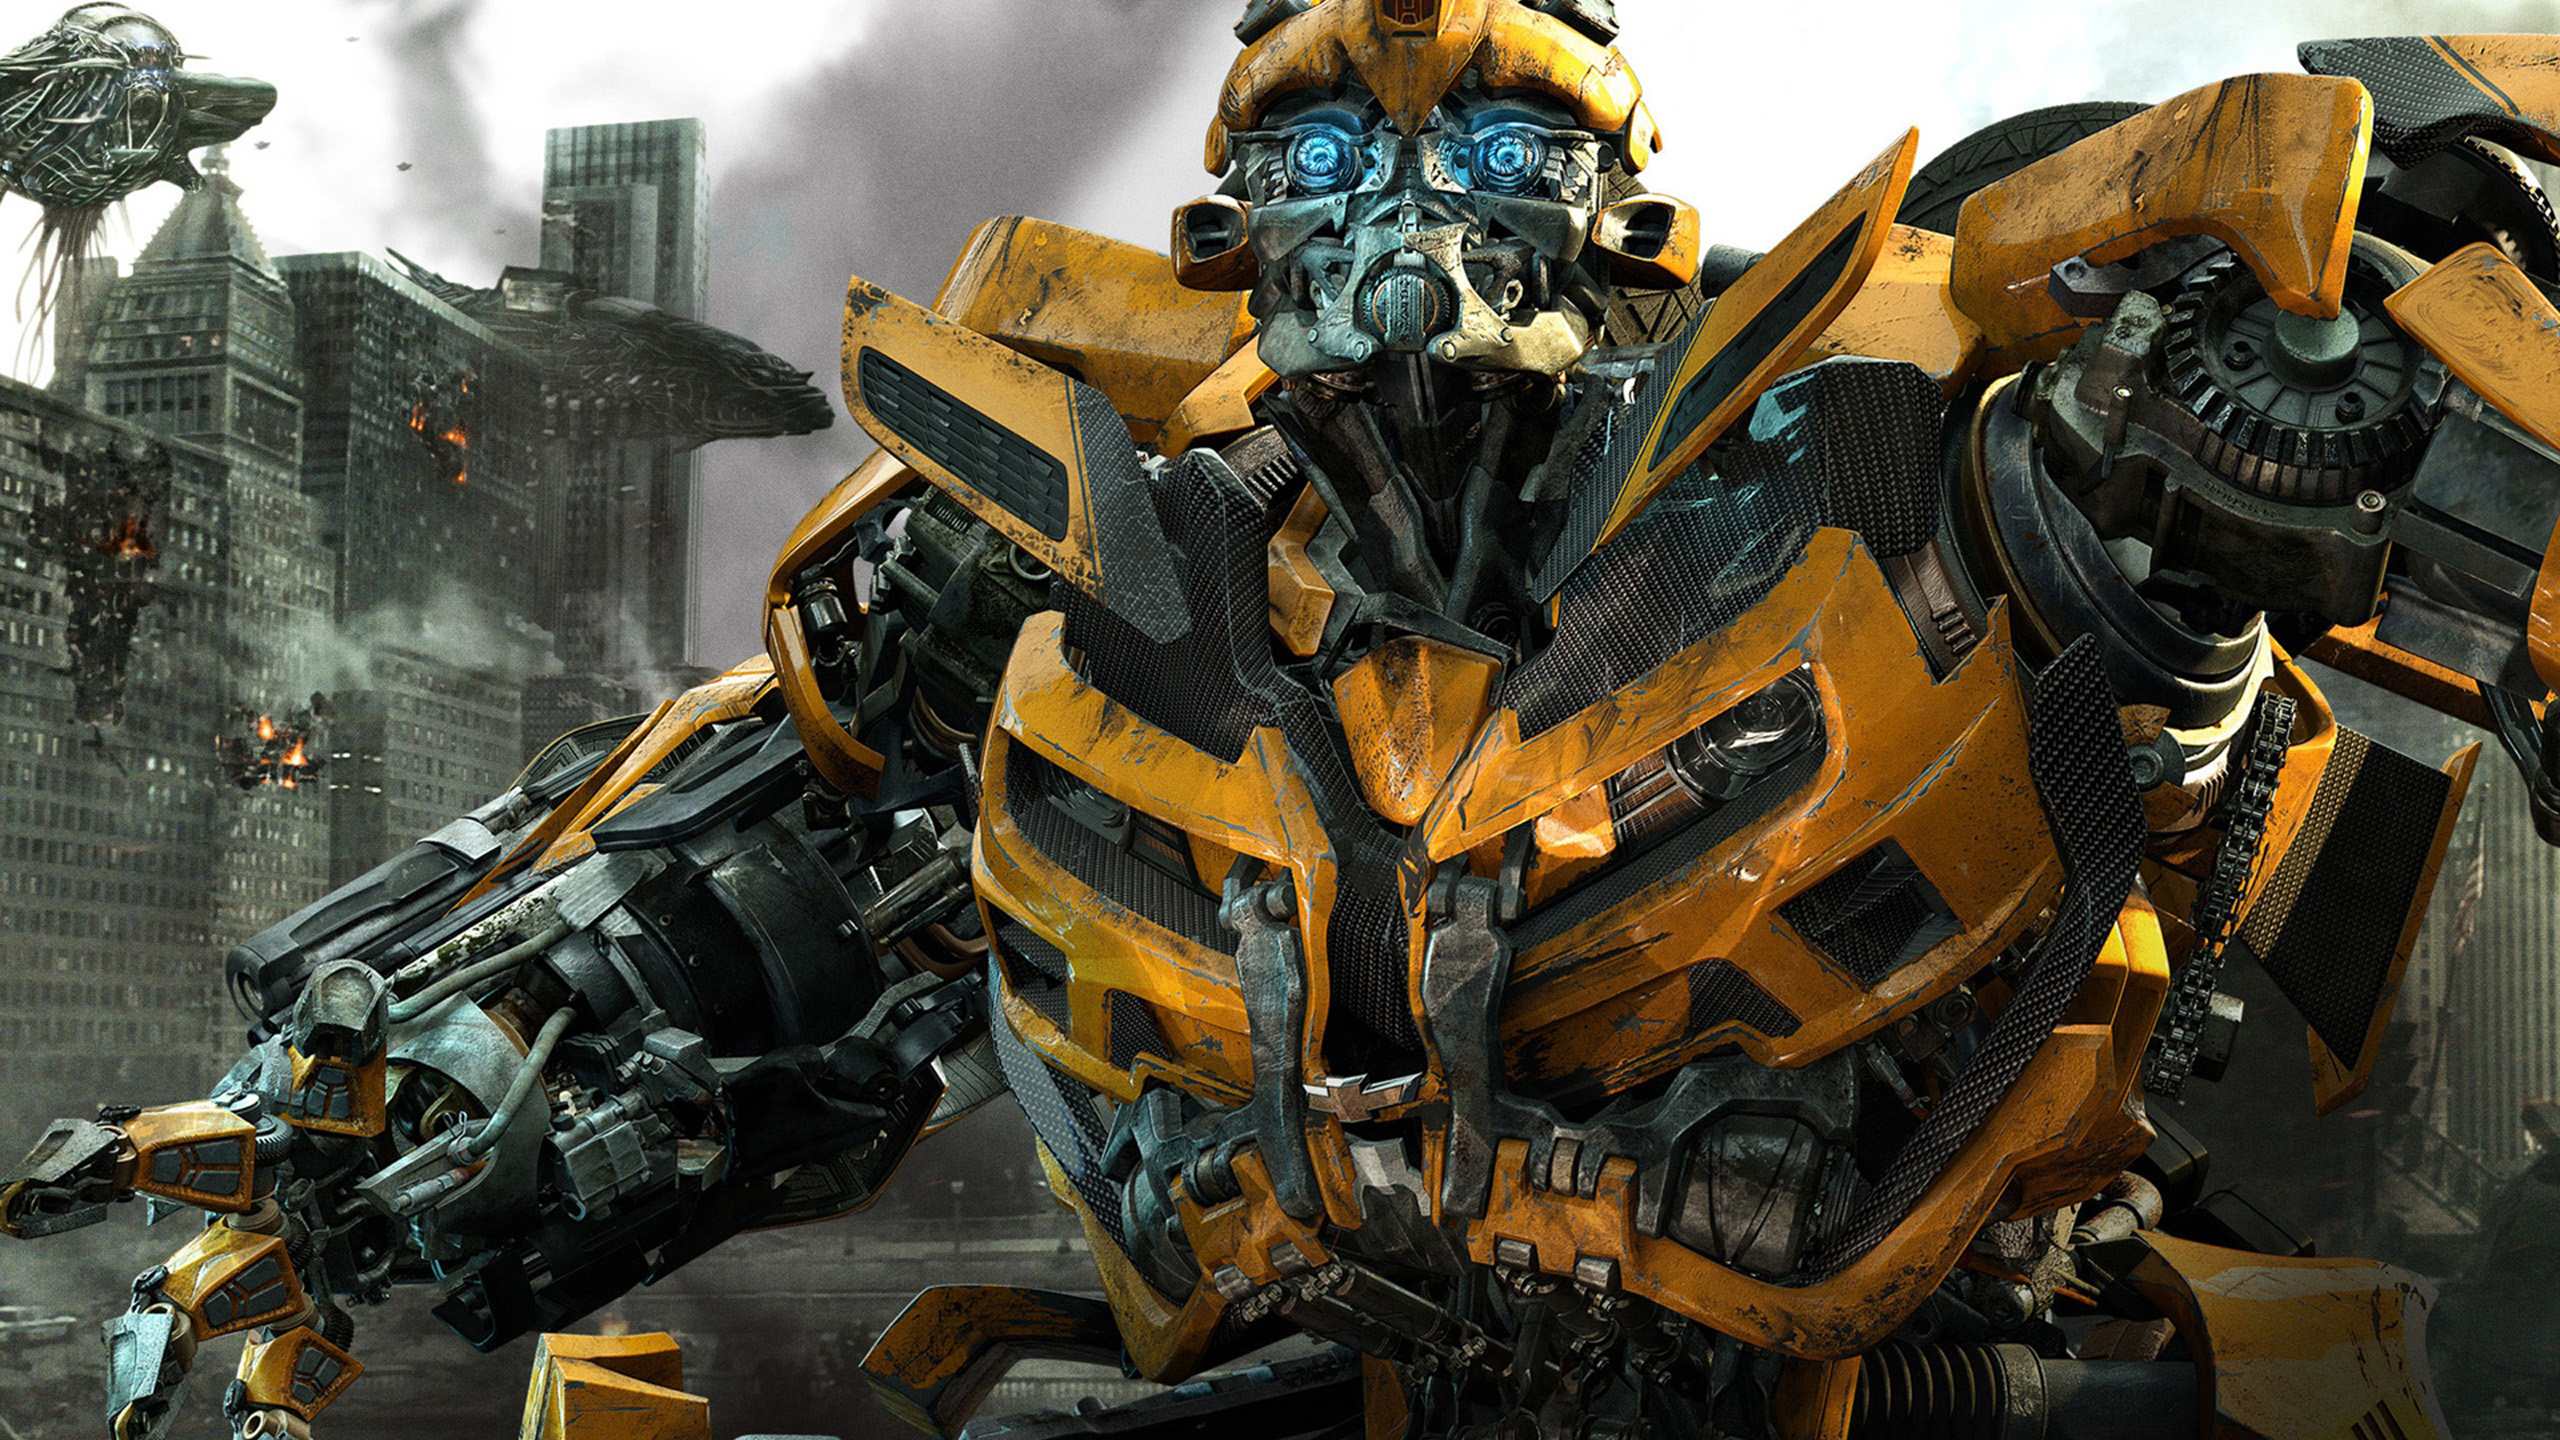 HD Transformers Wallpapers Backgrounds For Download 2560x1440